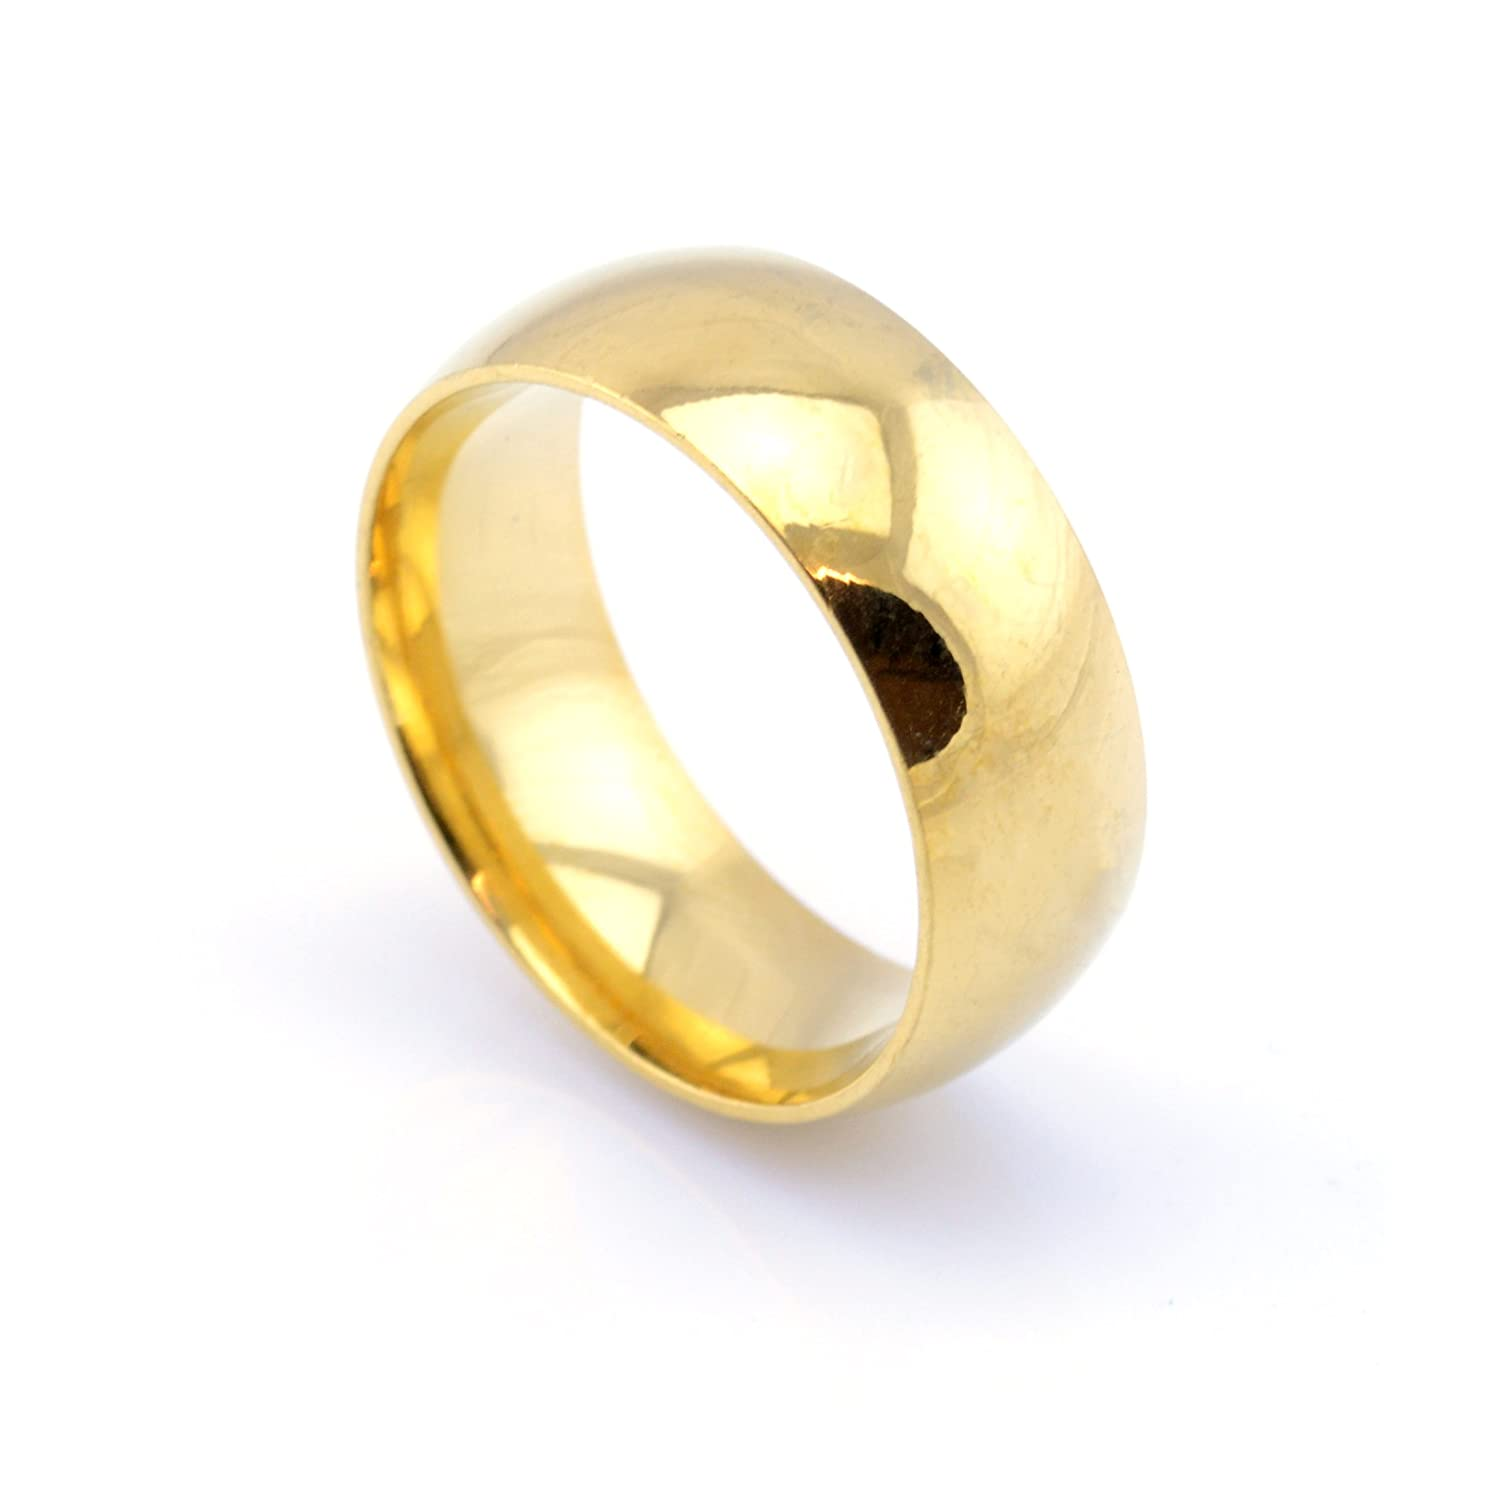 Vault 101 Limited 18k Gold Plated Mens Womens Stainless Steel Wedding Band Ring 8mm Wide